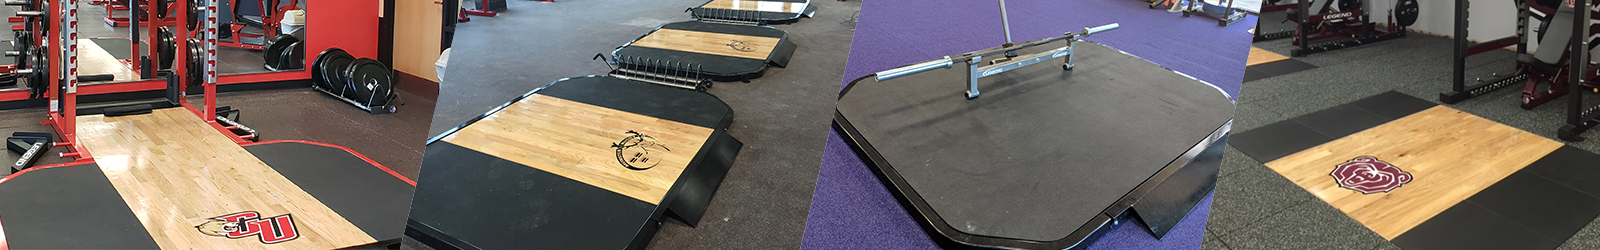 Lifting Platforms from Legend Fitness